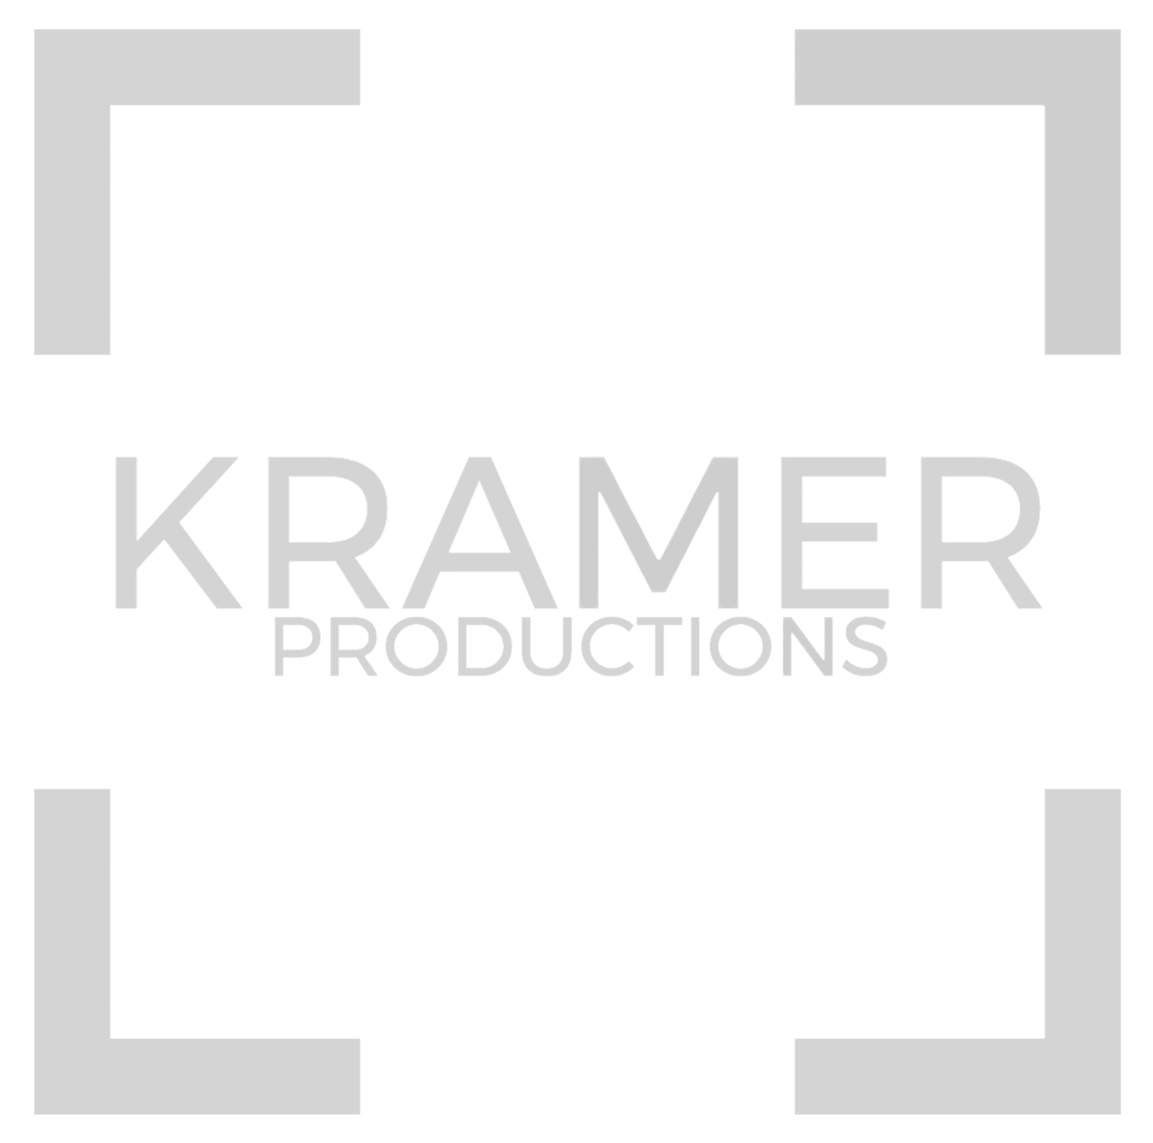 KRAMER PRODUCTIONS